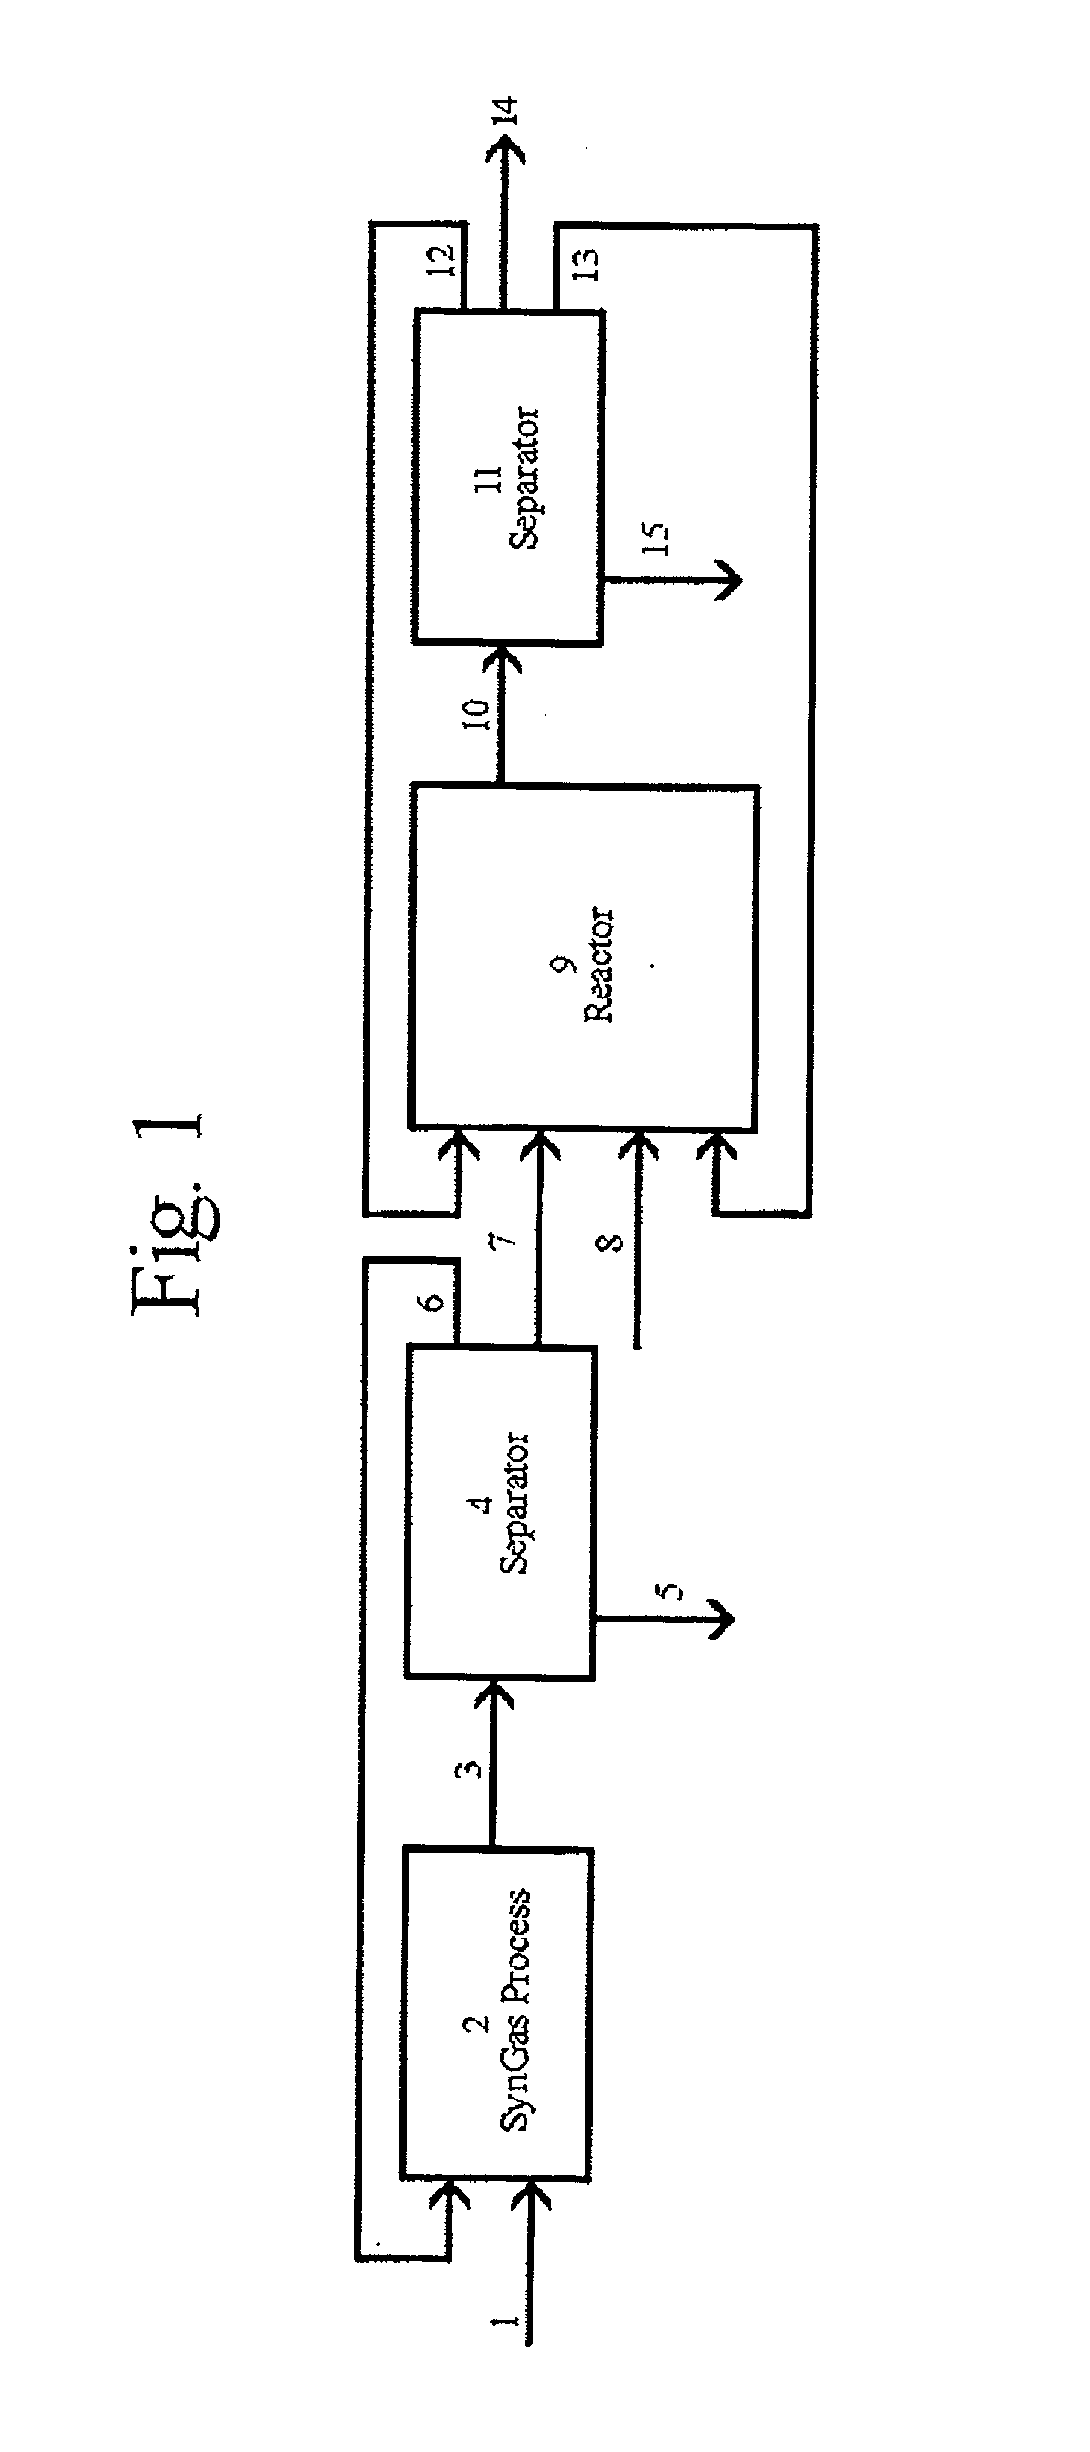 styrene production process flow diagram wiring of three way switch patent us20120238789 method for